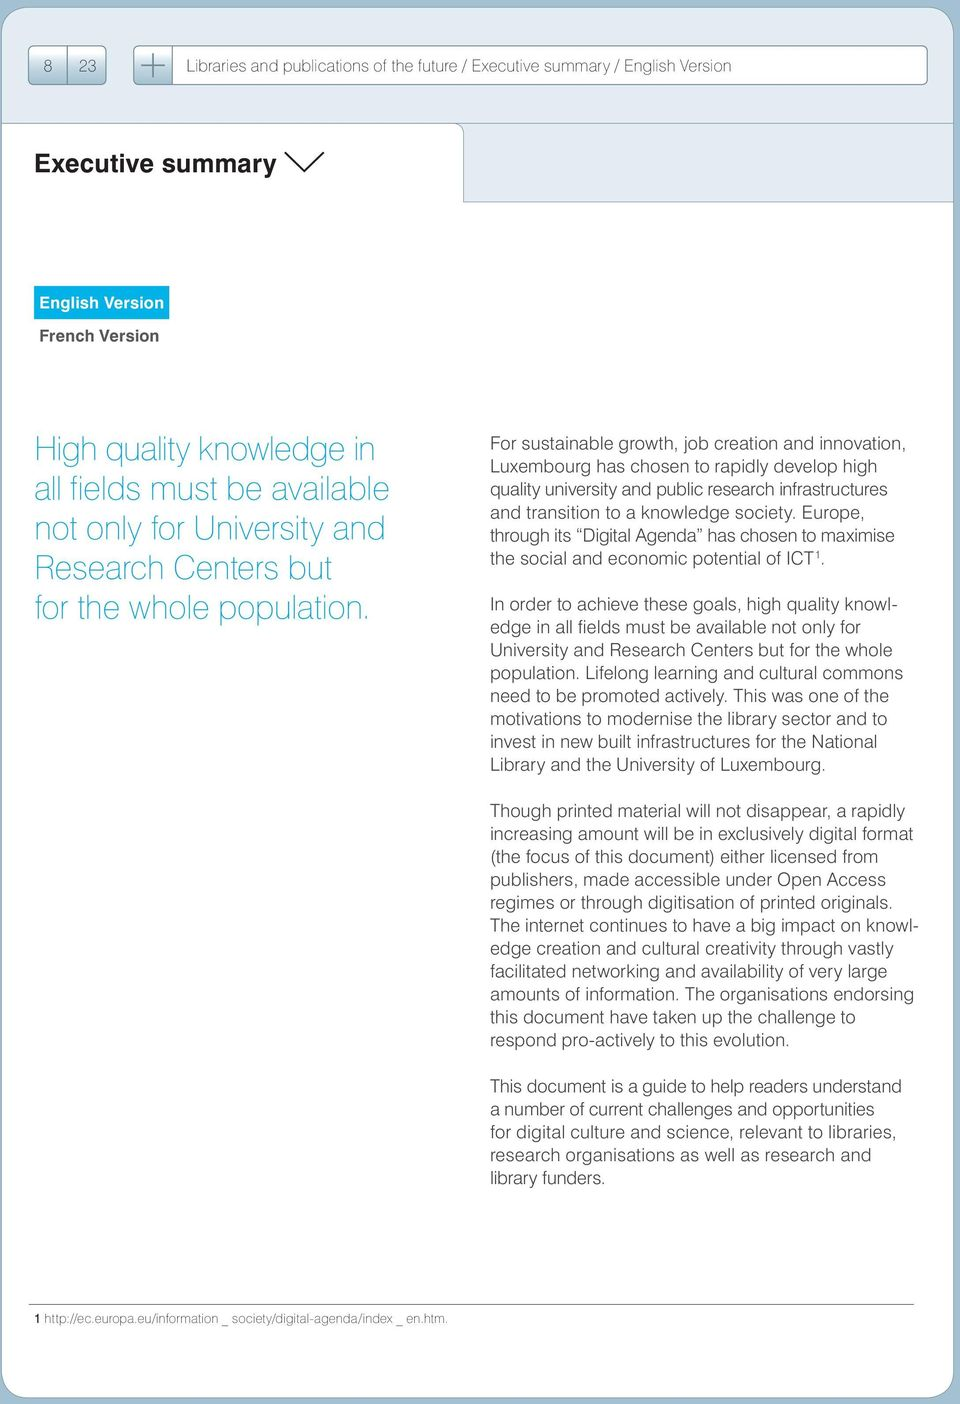 For sustainable growth, job creation and innovation, Luxembourg has chosen to rapidly develop high quality university and public research infrastructures and transition to a knowledge society.